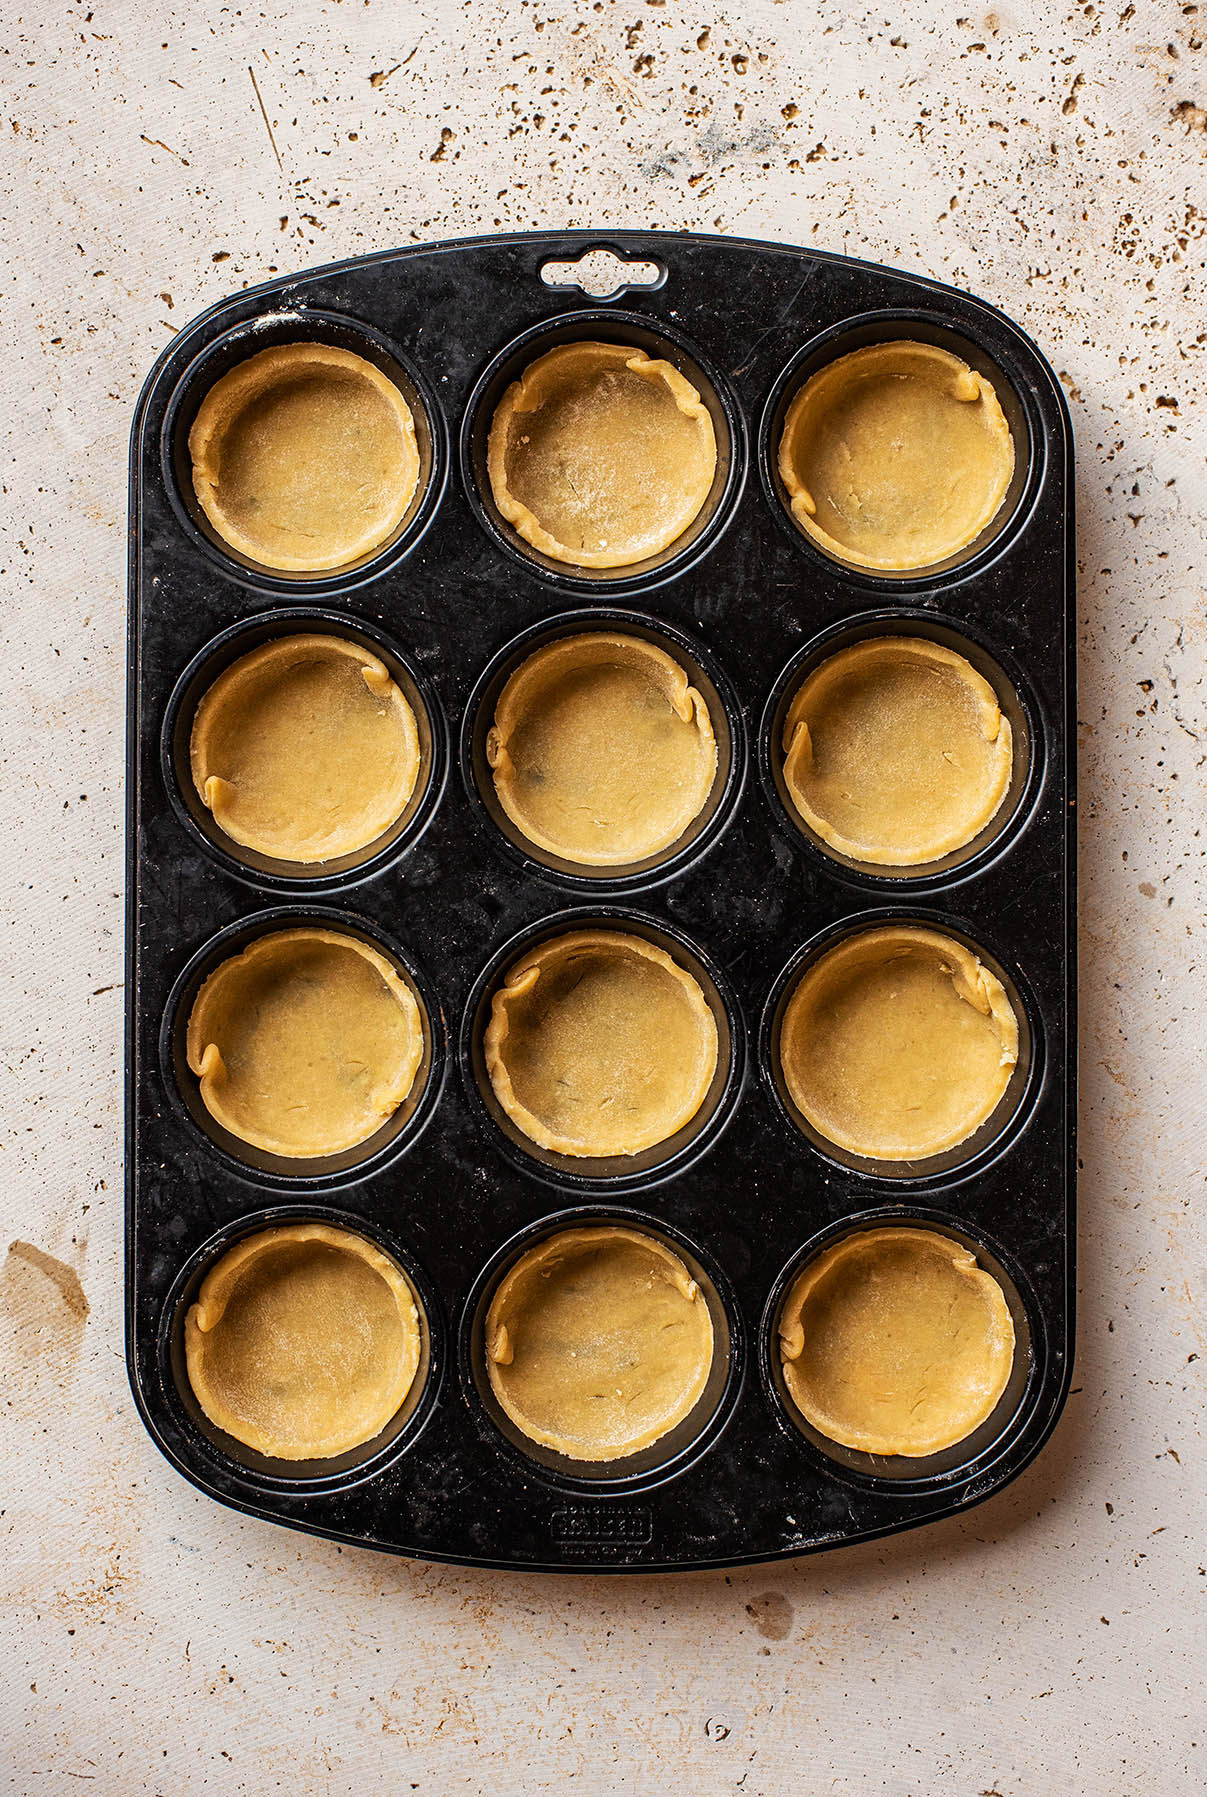 Tart shells in the muffin tin.